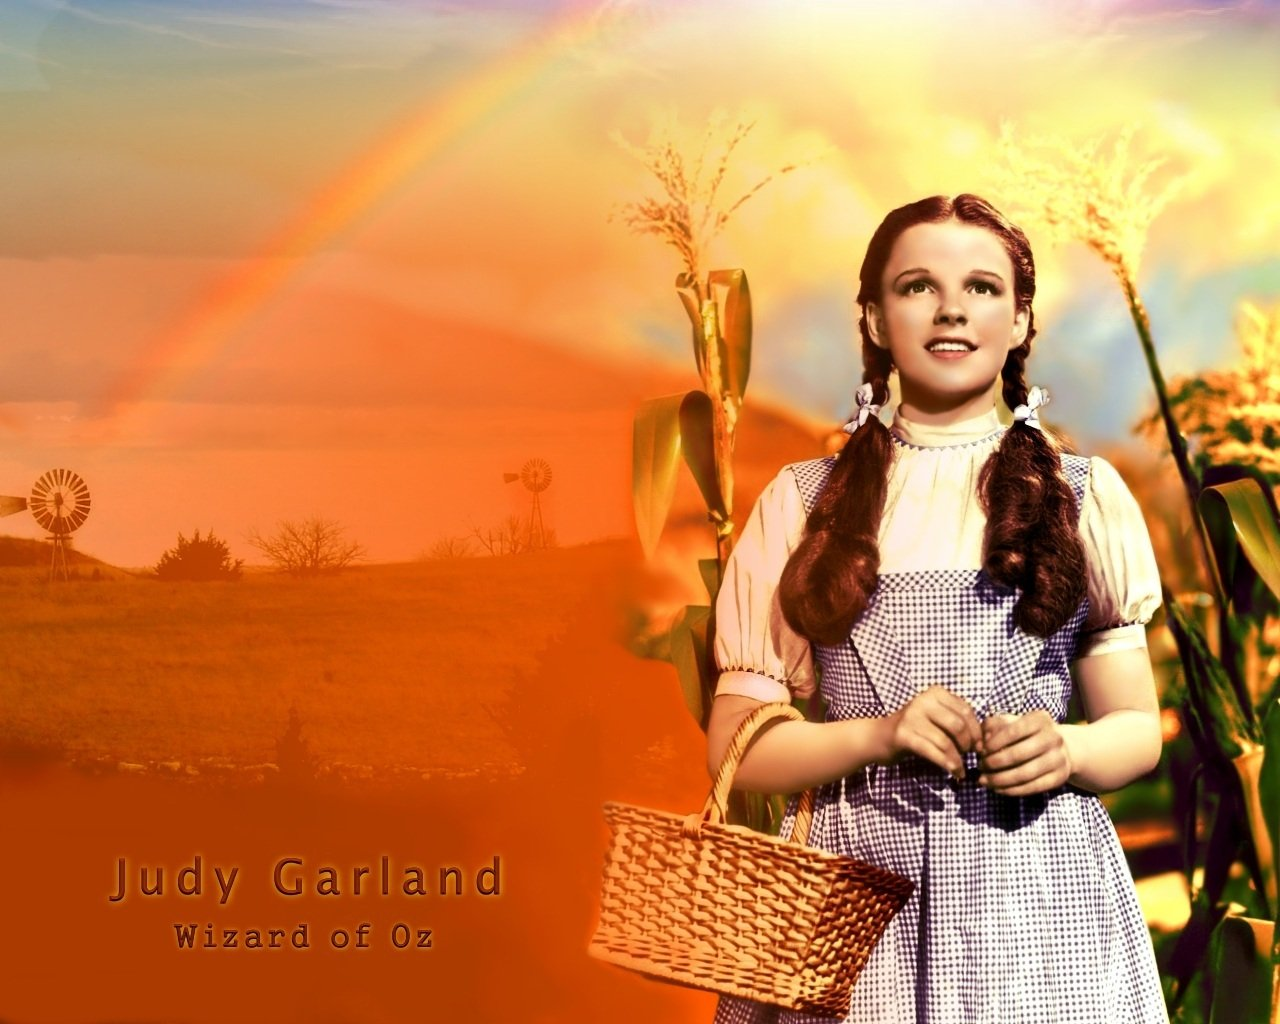 Free download Judy Garland Wizard Of Oz